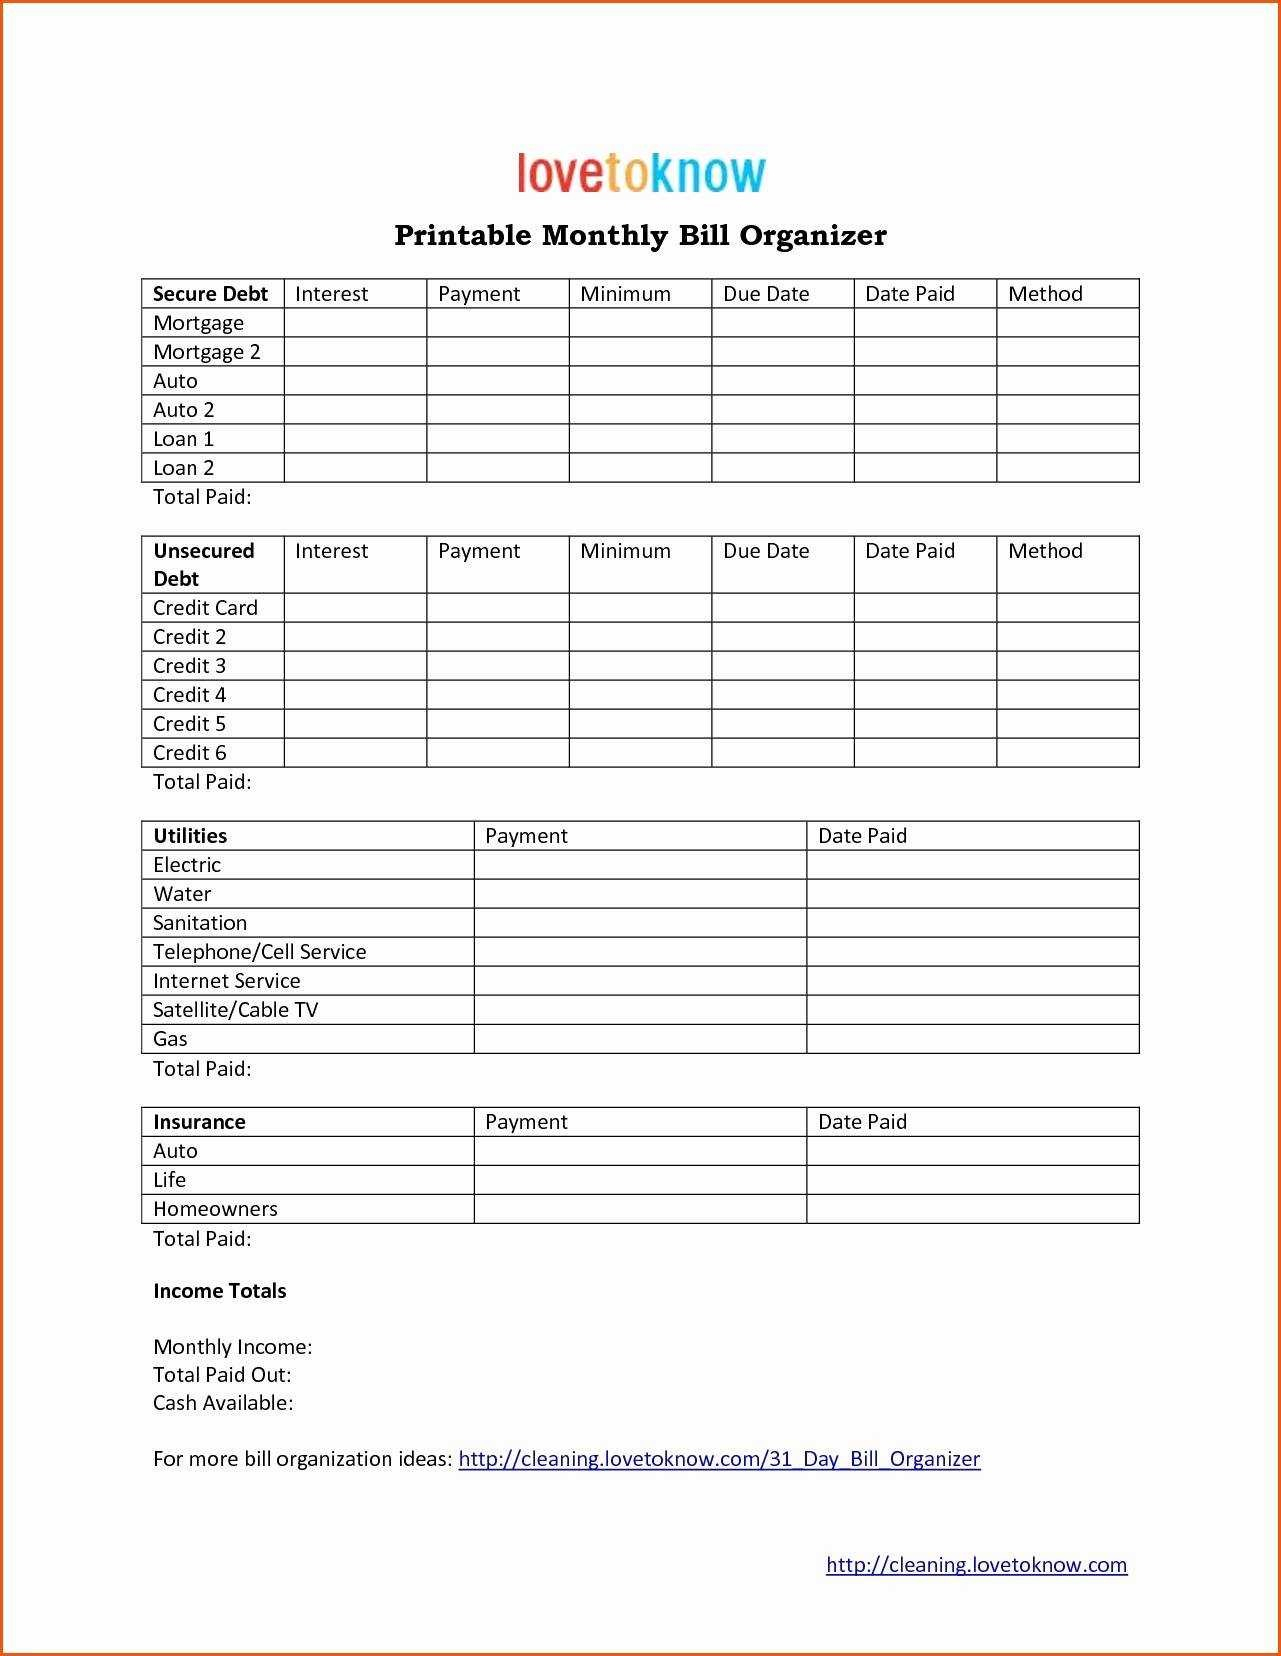 Monthly Profit And Loss Statement Template And Bill Pay Calendar inside Bill Payment Calendar Template Printable